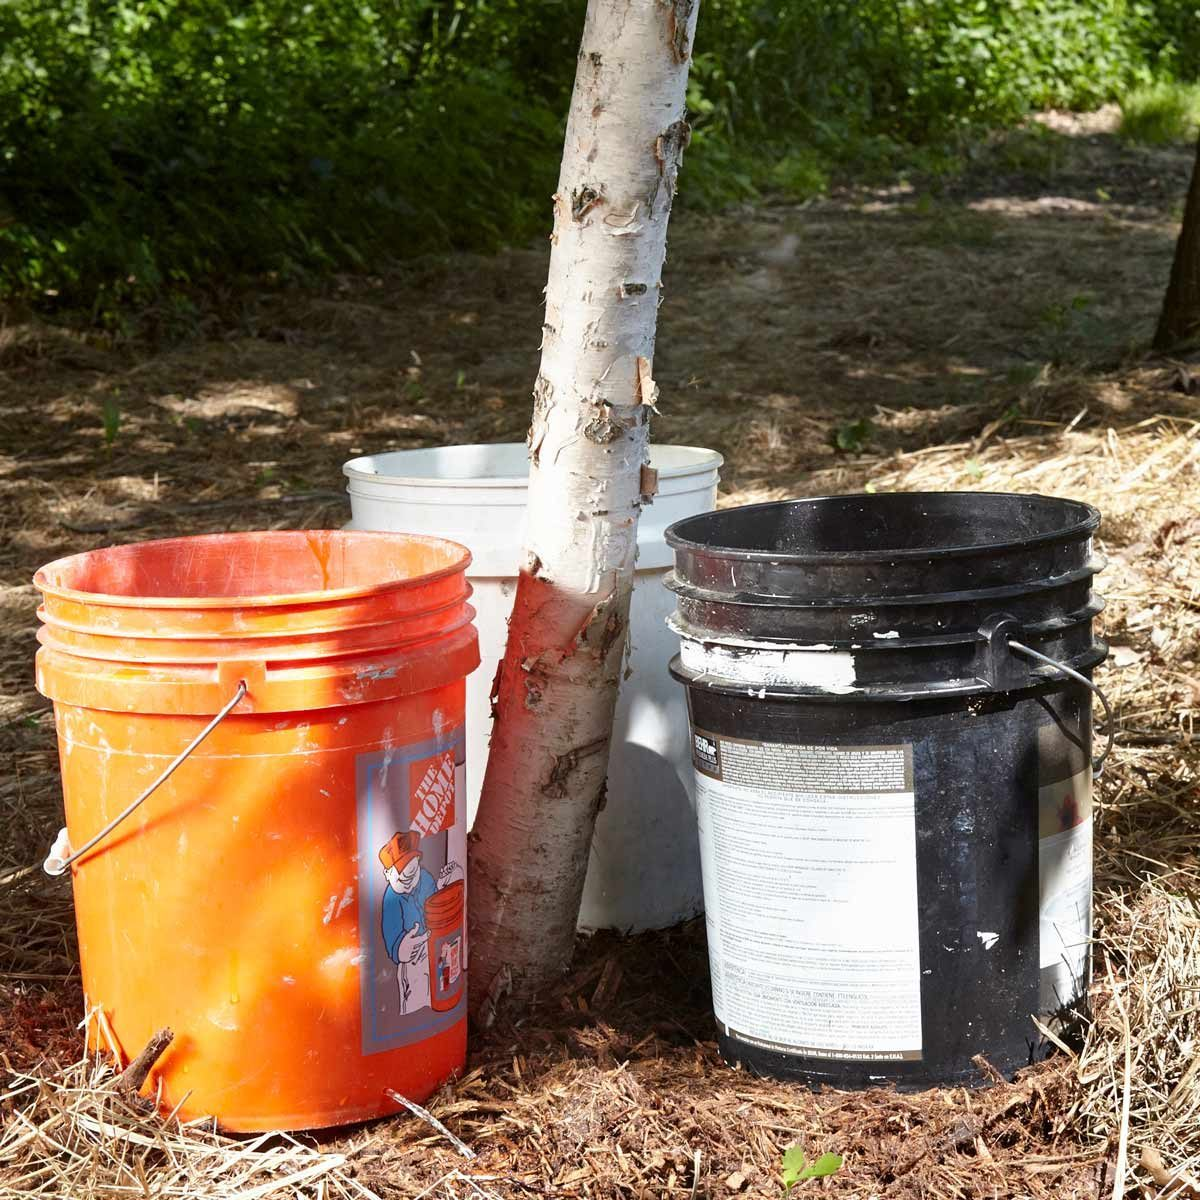 buckets under trees filling with water